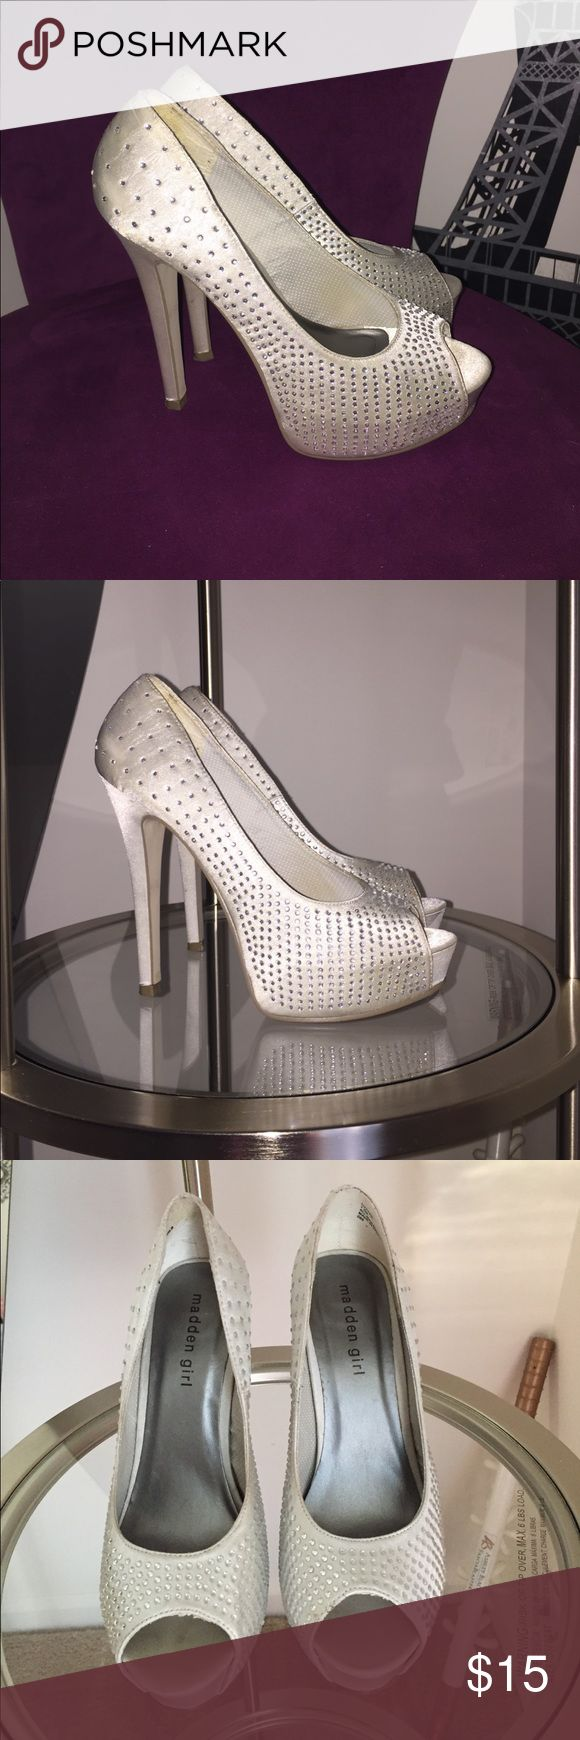 Prom Shoes. silver, bling platform open toe heels. Madden girl silver, silk with the bling platform open toe heels. I wore these ones however I took pictures of all the blemishes these shoes have. The fabric  gets dirty easy. Perfect for prom one night use. Madden Girl Shoes Platforms